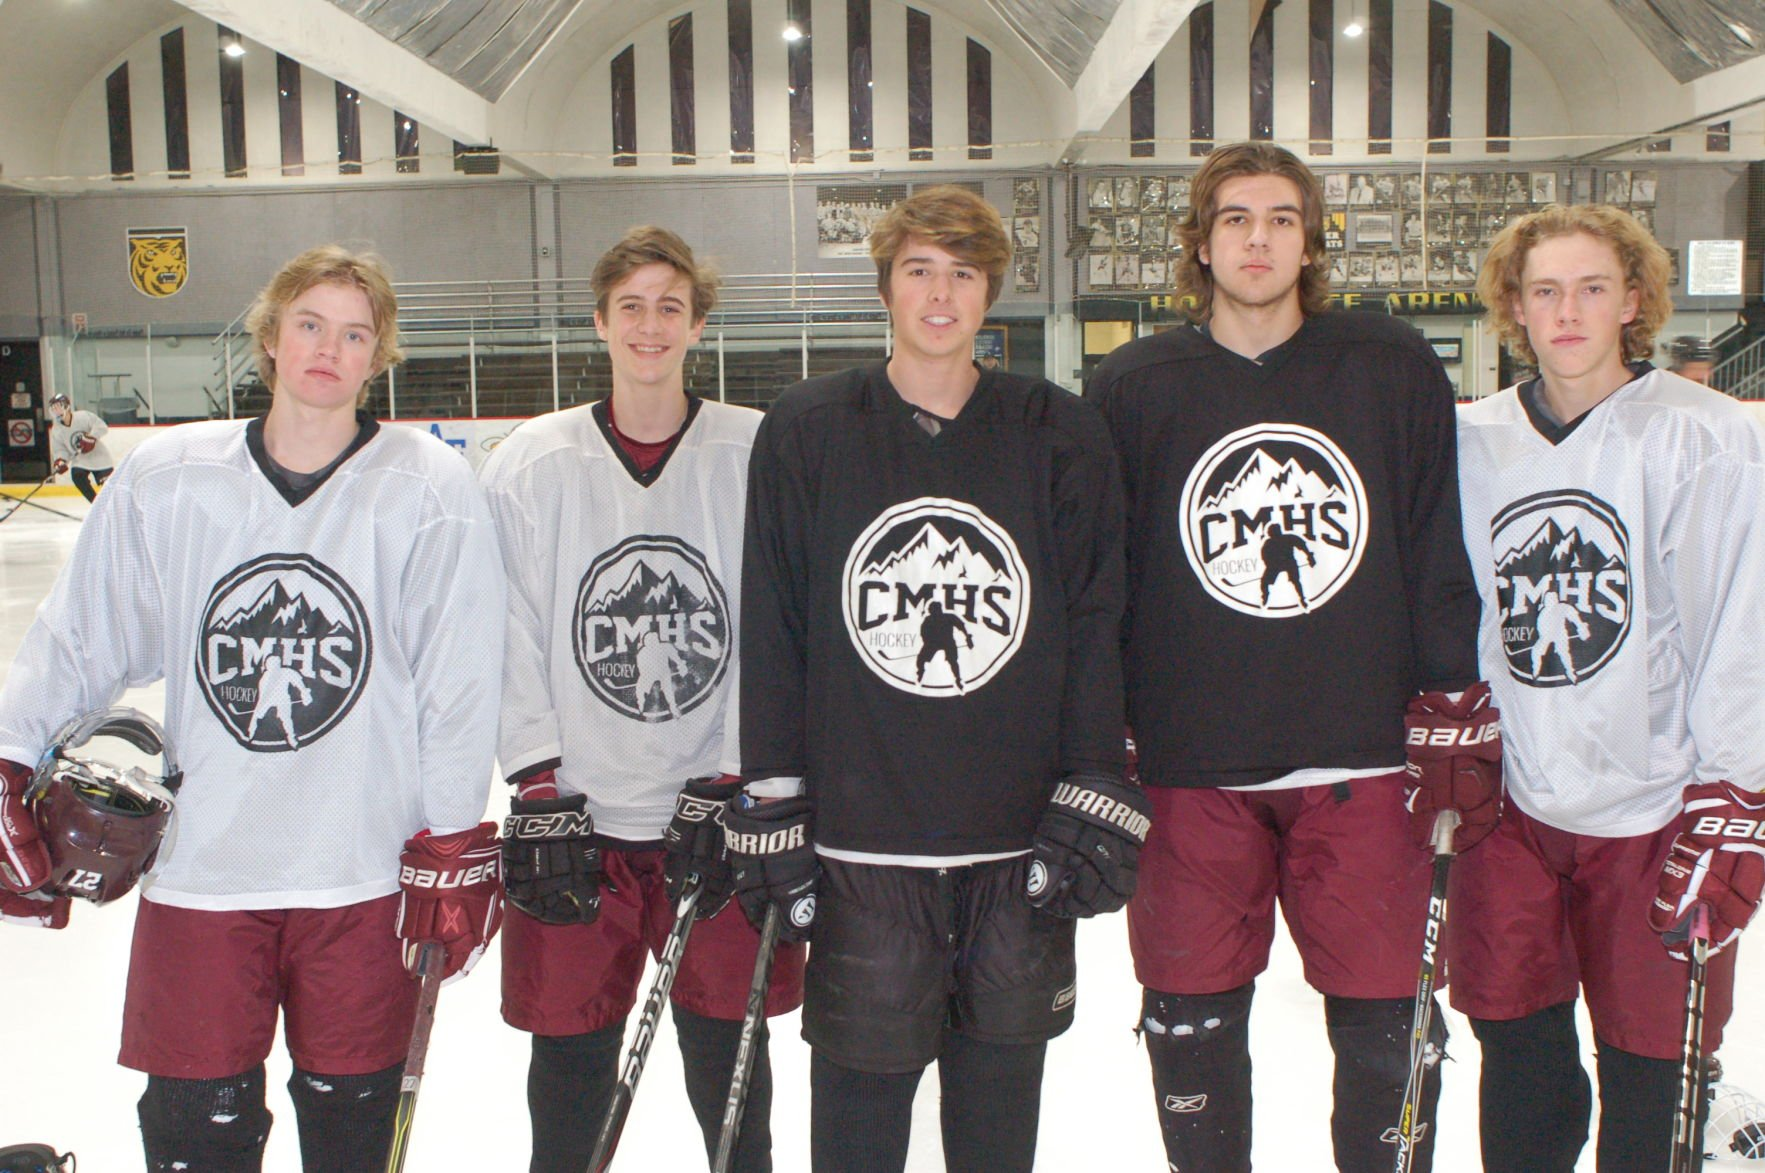 CO H.S.: Chasing A League Title - Cheyenne Mountain High School Hockey Team Moves Into Second Half Of Season Determined To Come Out On Top